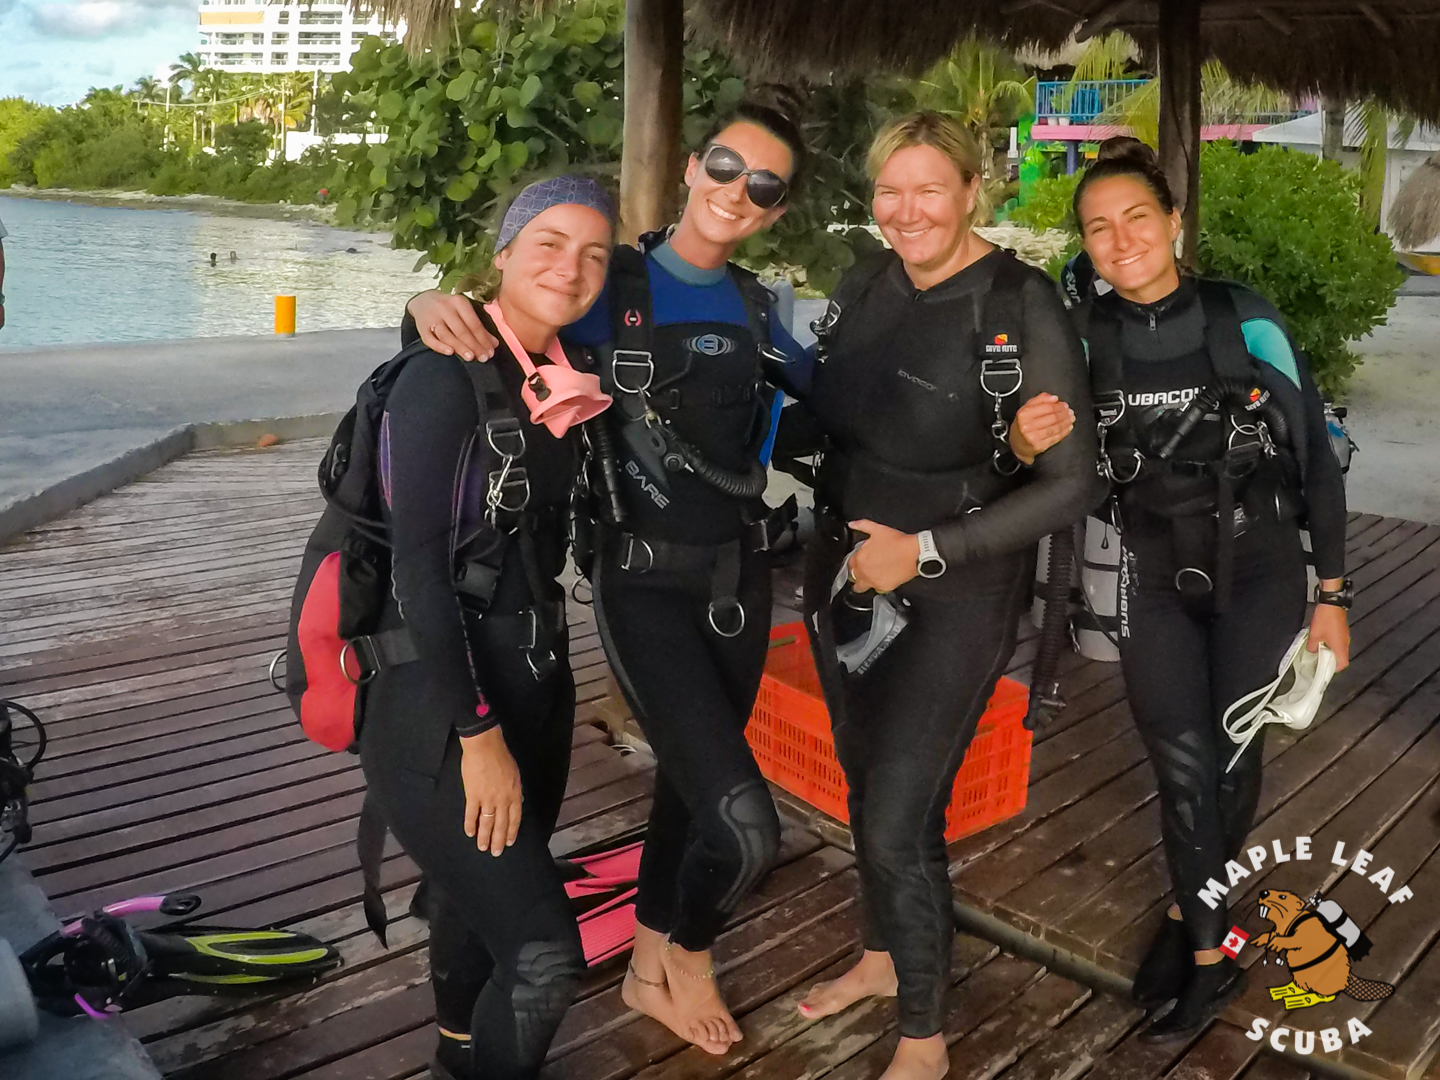 Maple Leaf scuba girls going for a fun sidemount dive